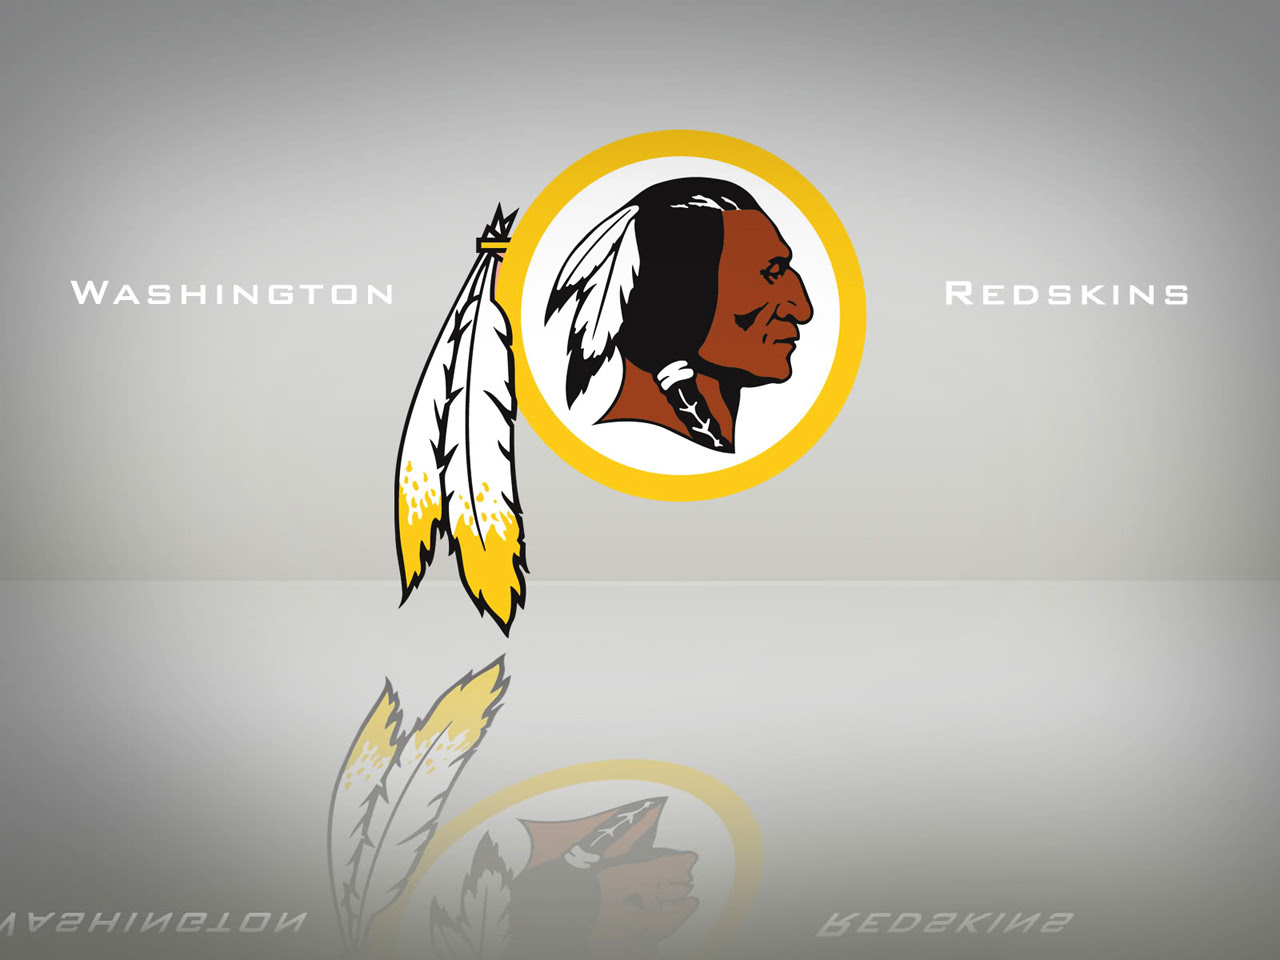 Redskins Wallpaper 1280x960 69539